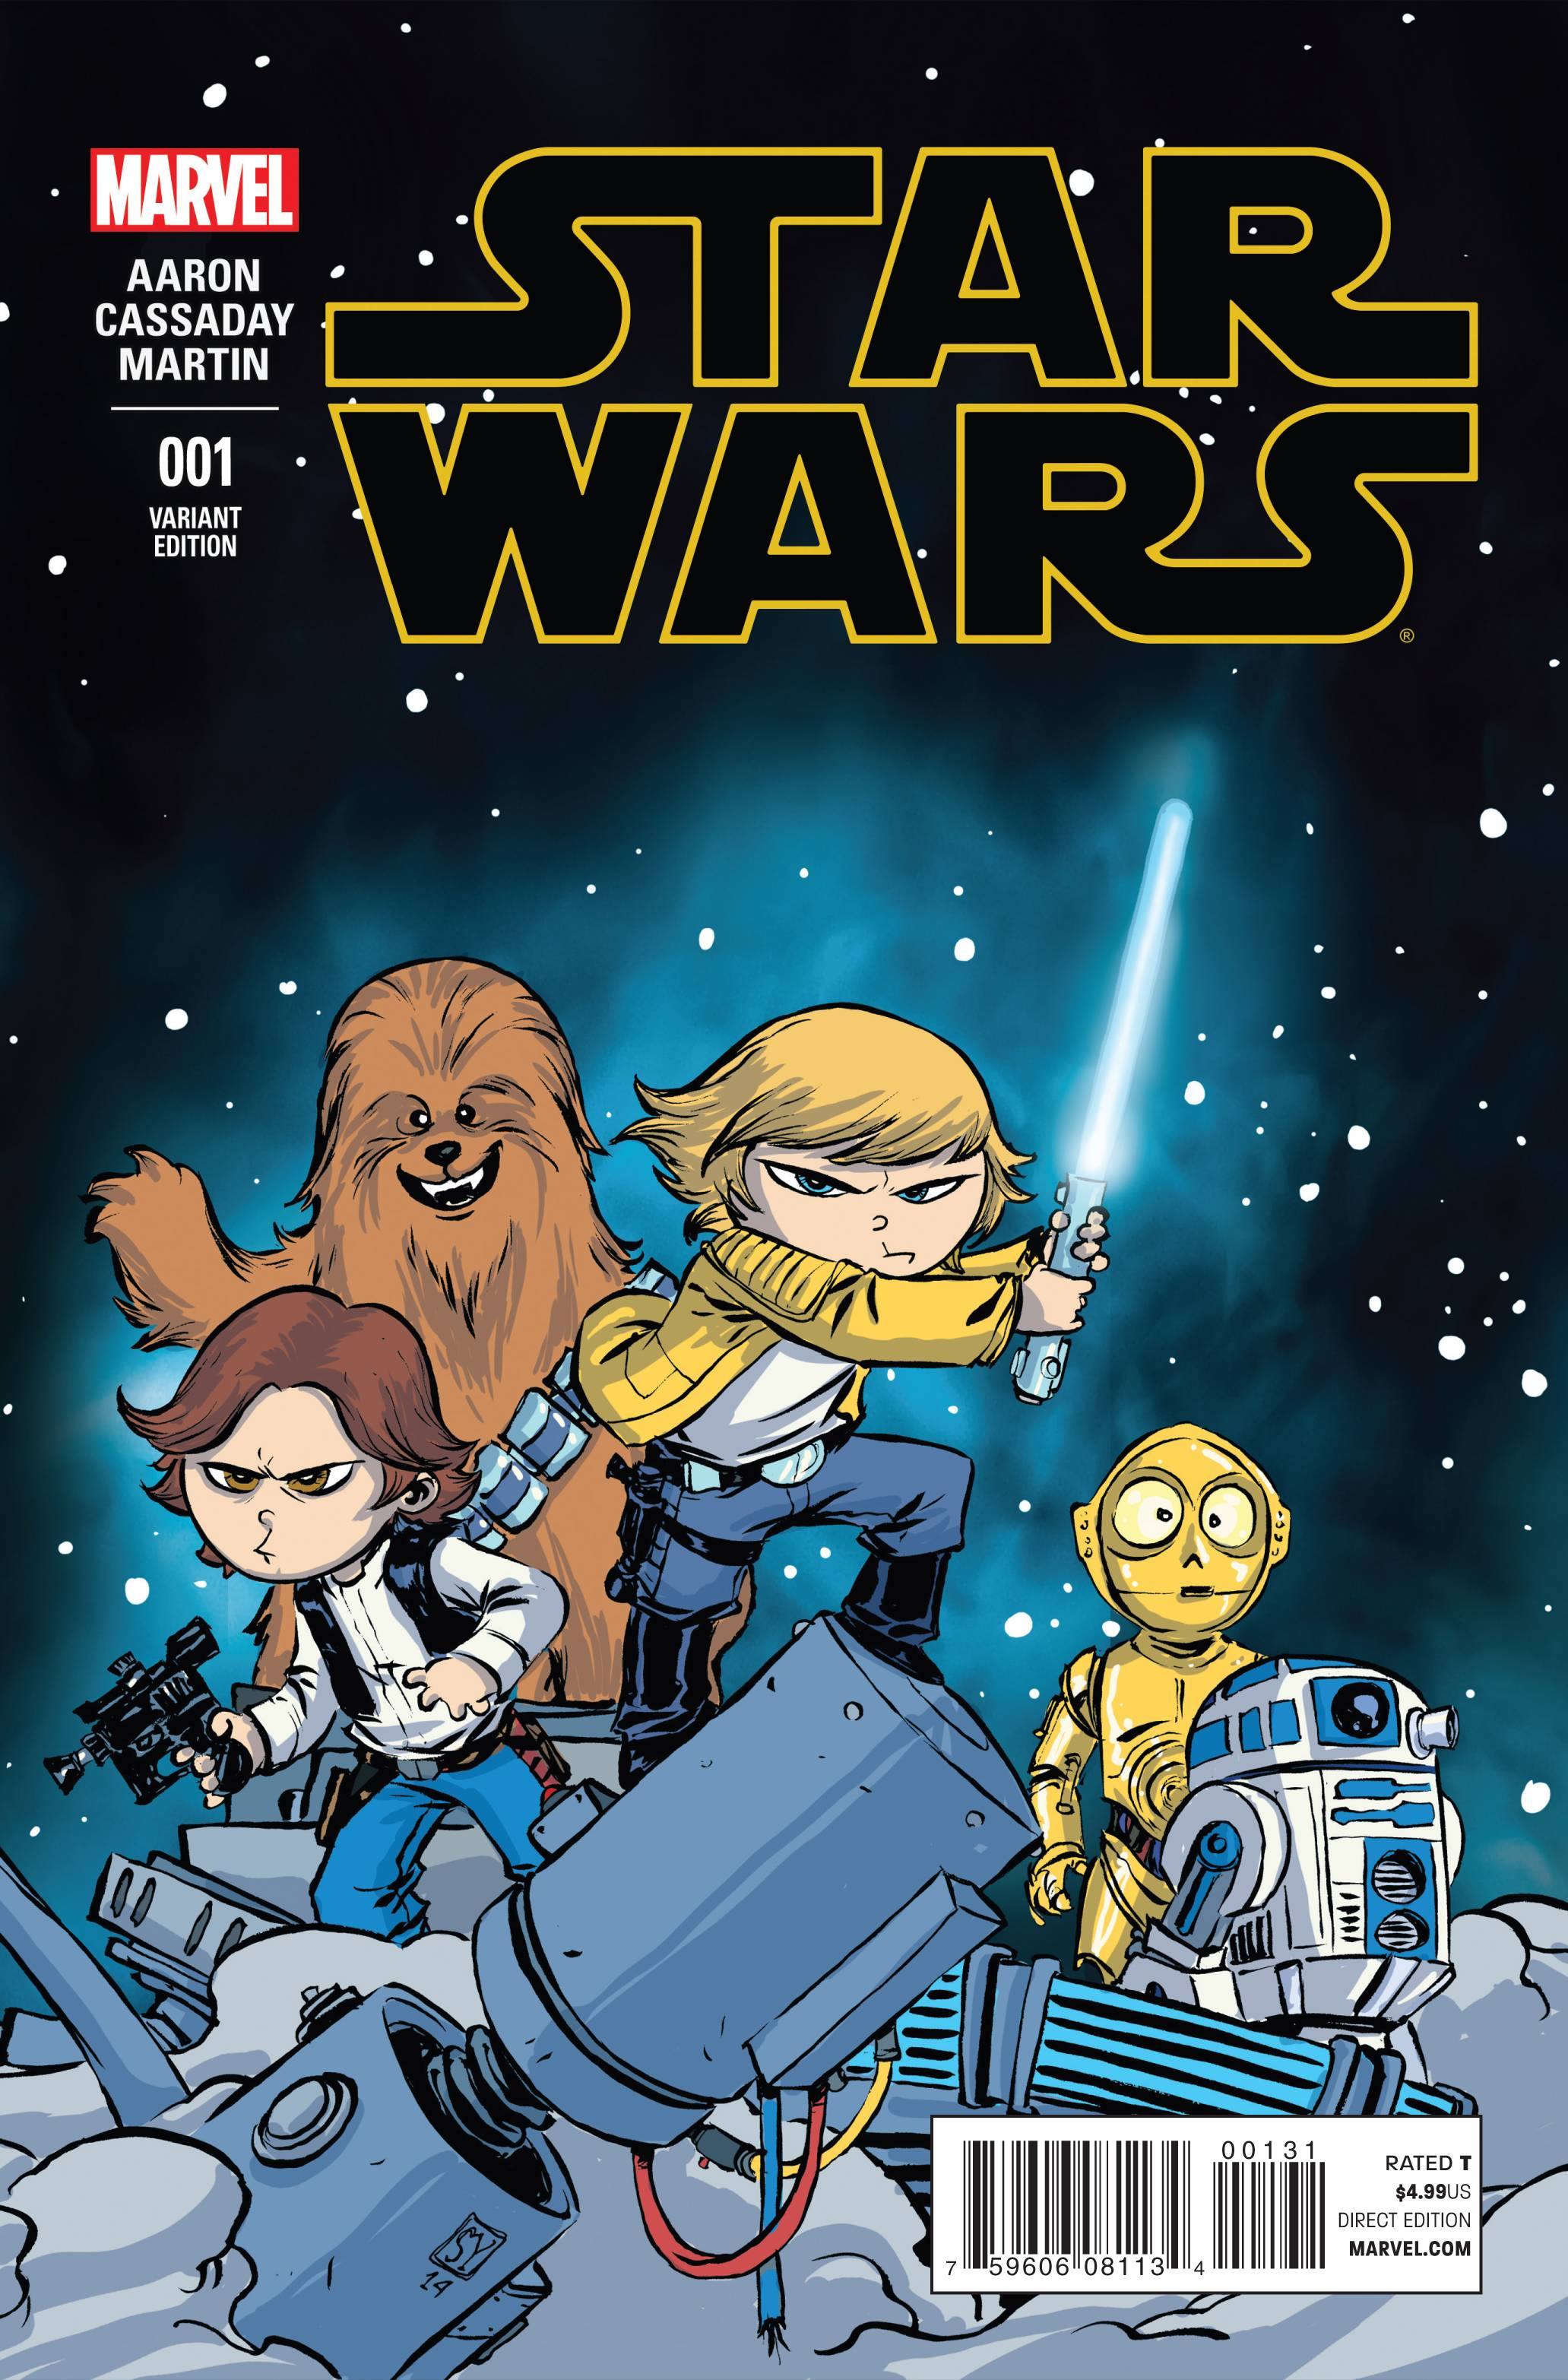 Star Wars #1 (Skottie Young Variant Cover) (14.01.2015)